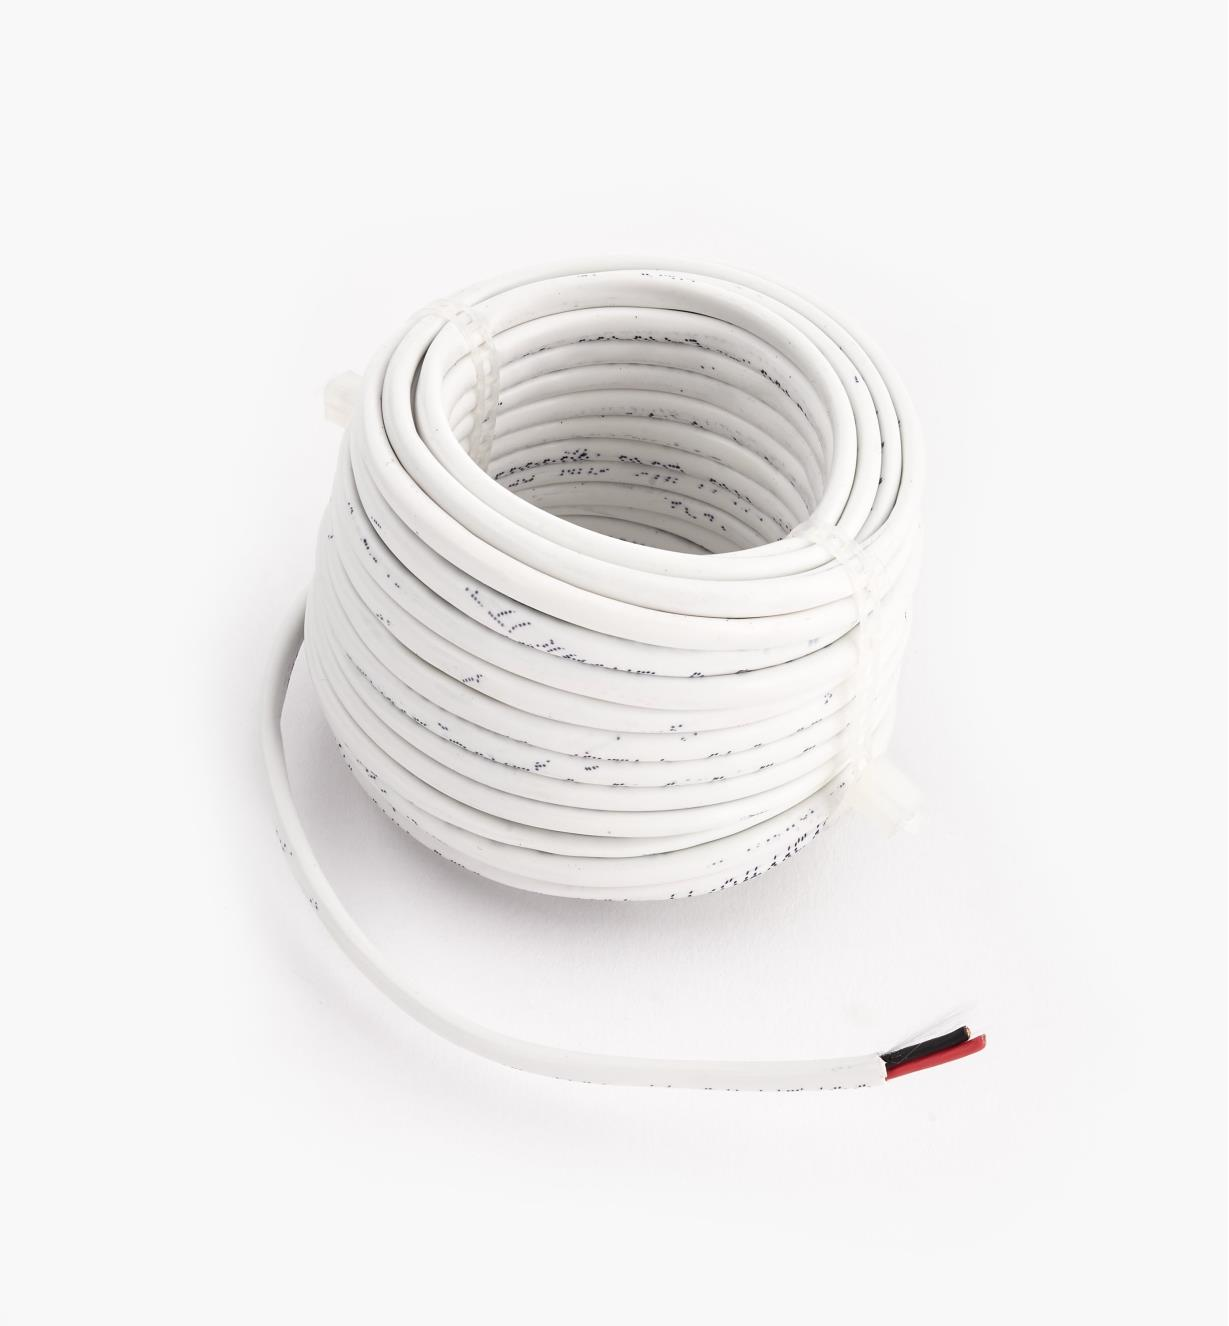 00U4138 - 18ga. Stranded Two-Conductor In-Wall Wire, 26.2' (8m)